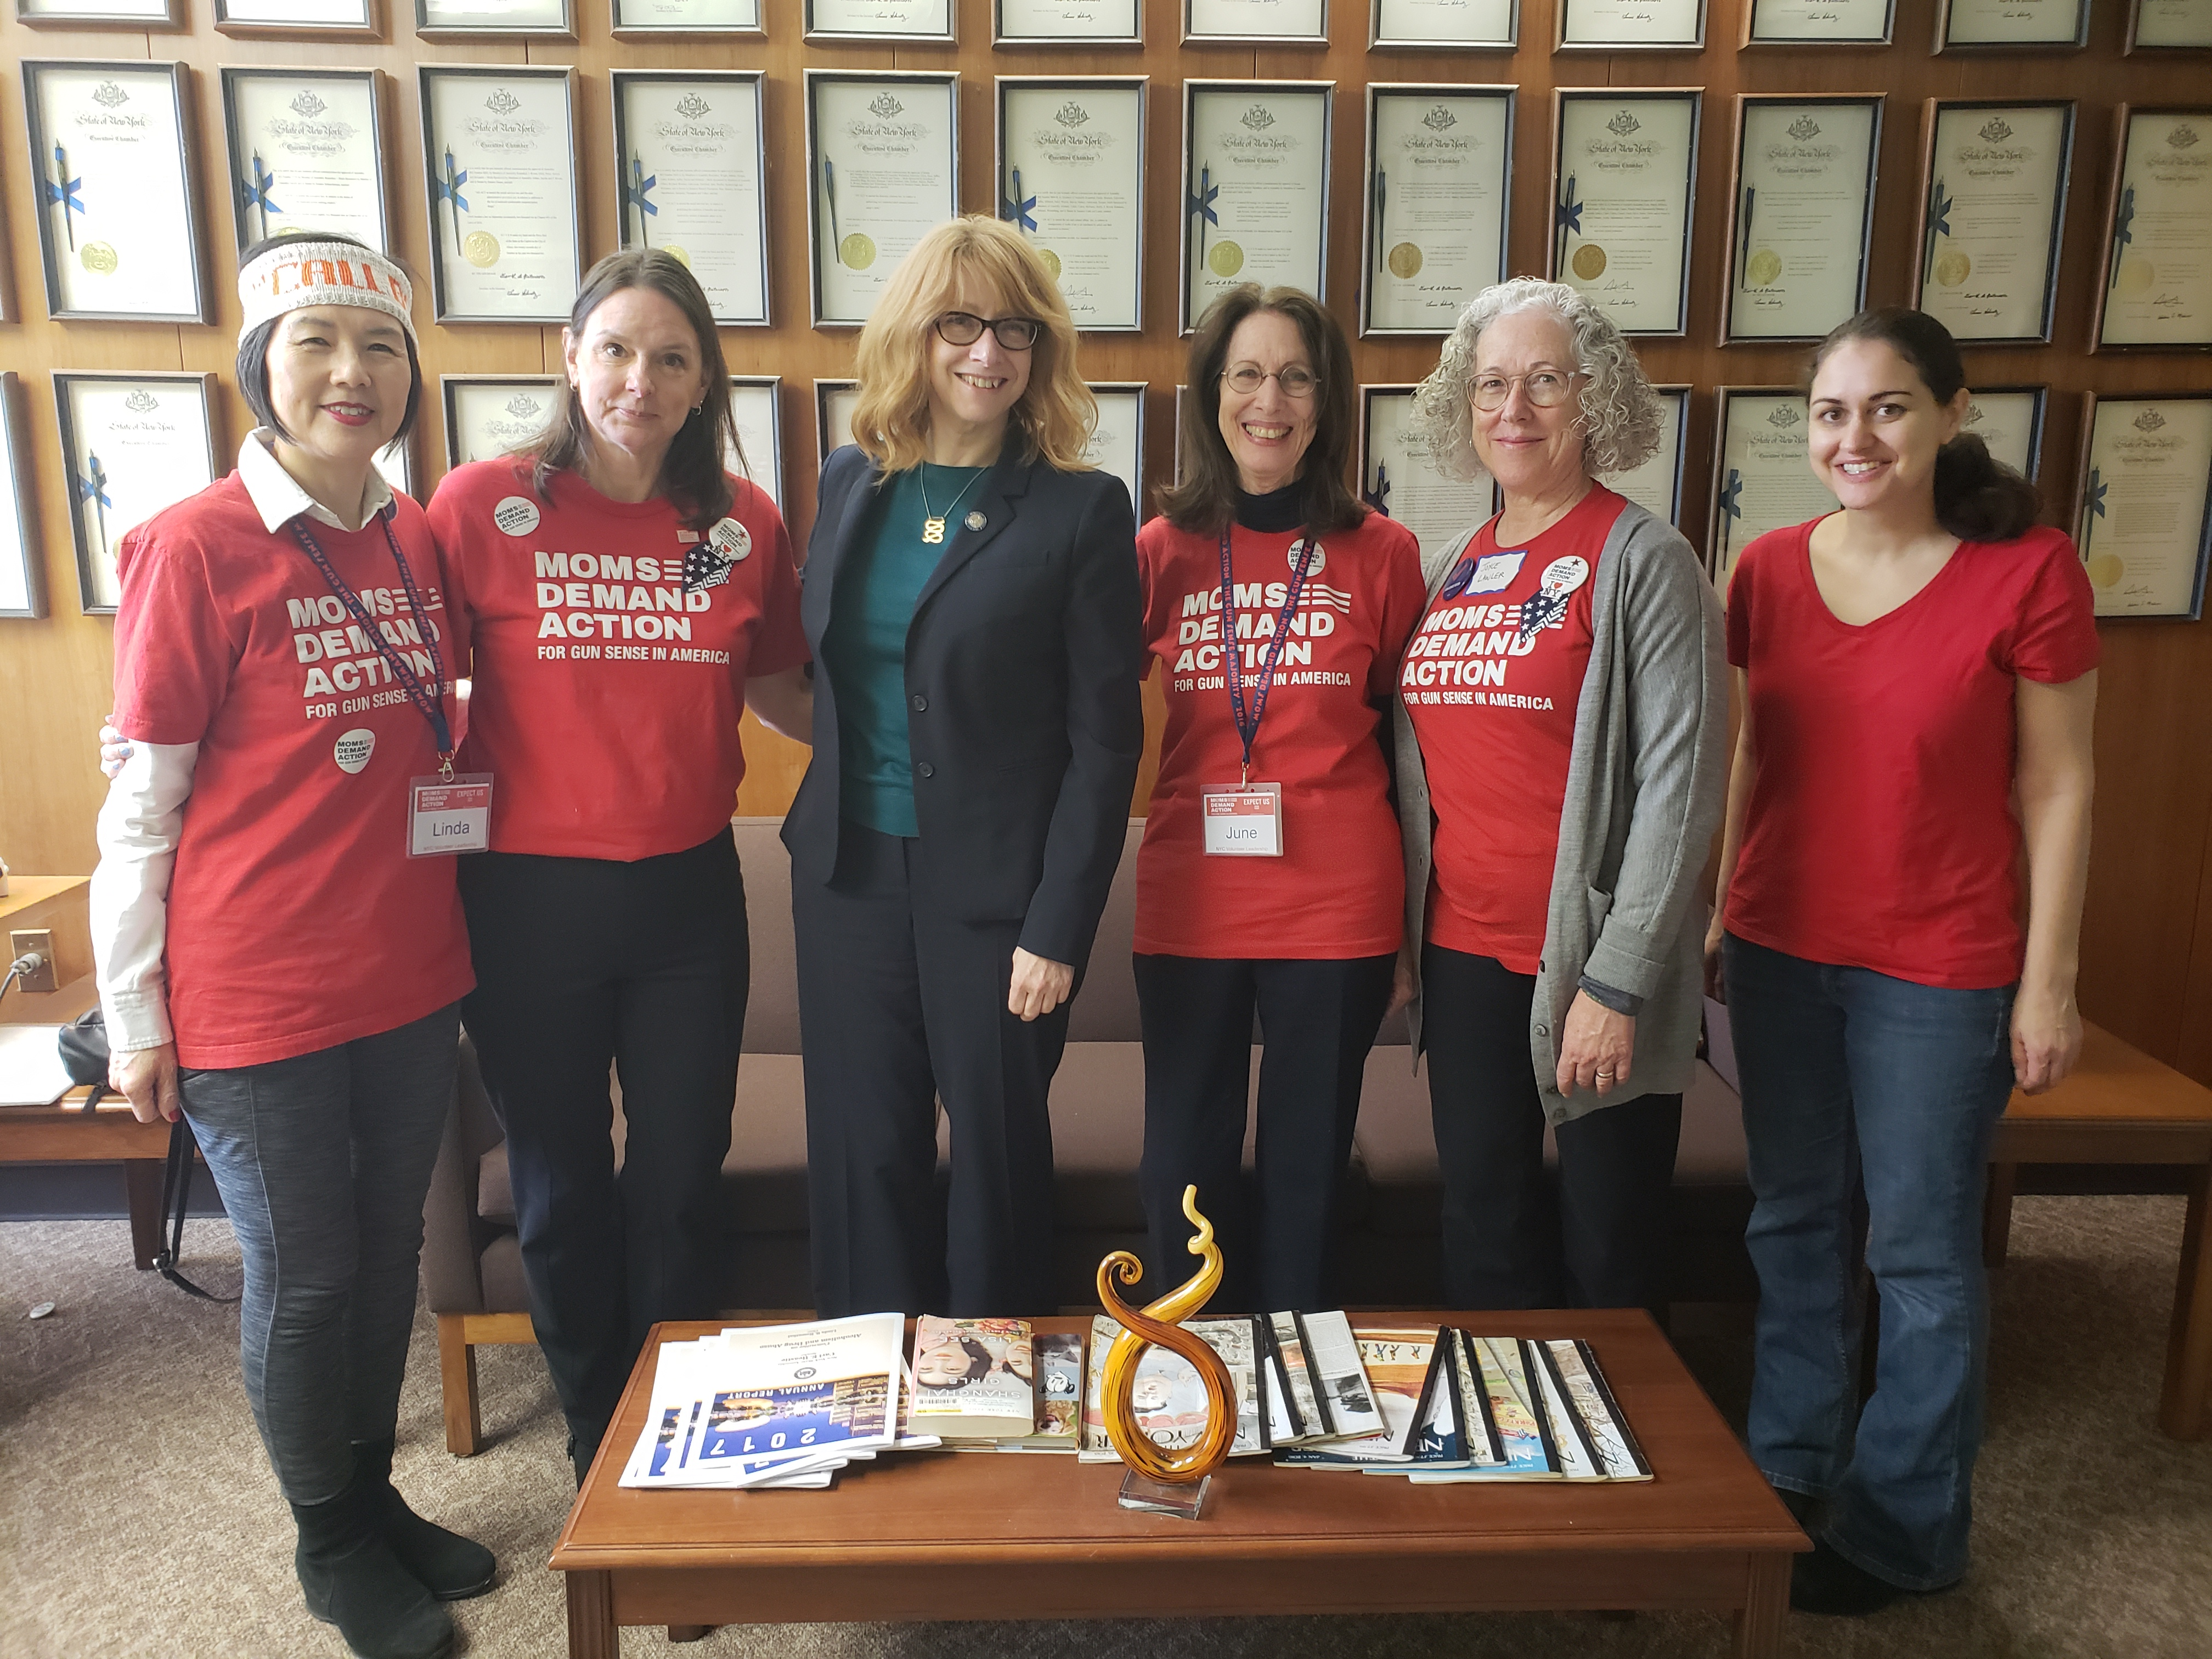 Moms Assemblymember Linda B. Rosenthal meets with Moms Demand Action for Gun Sense in America in Albany to discuss the need for tougher gun laws in New York State (L-R: Linda Dumm, Joyce Lawler, June